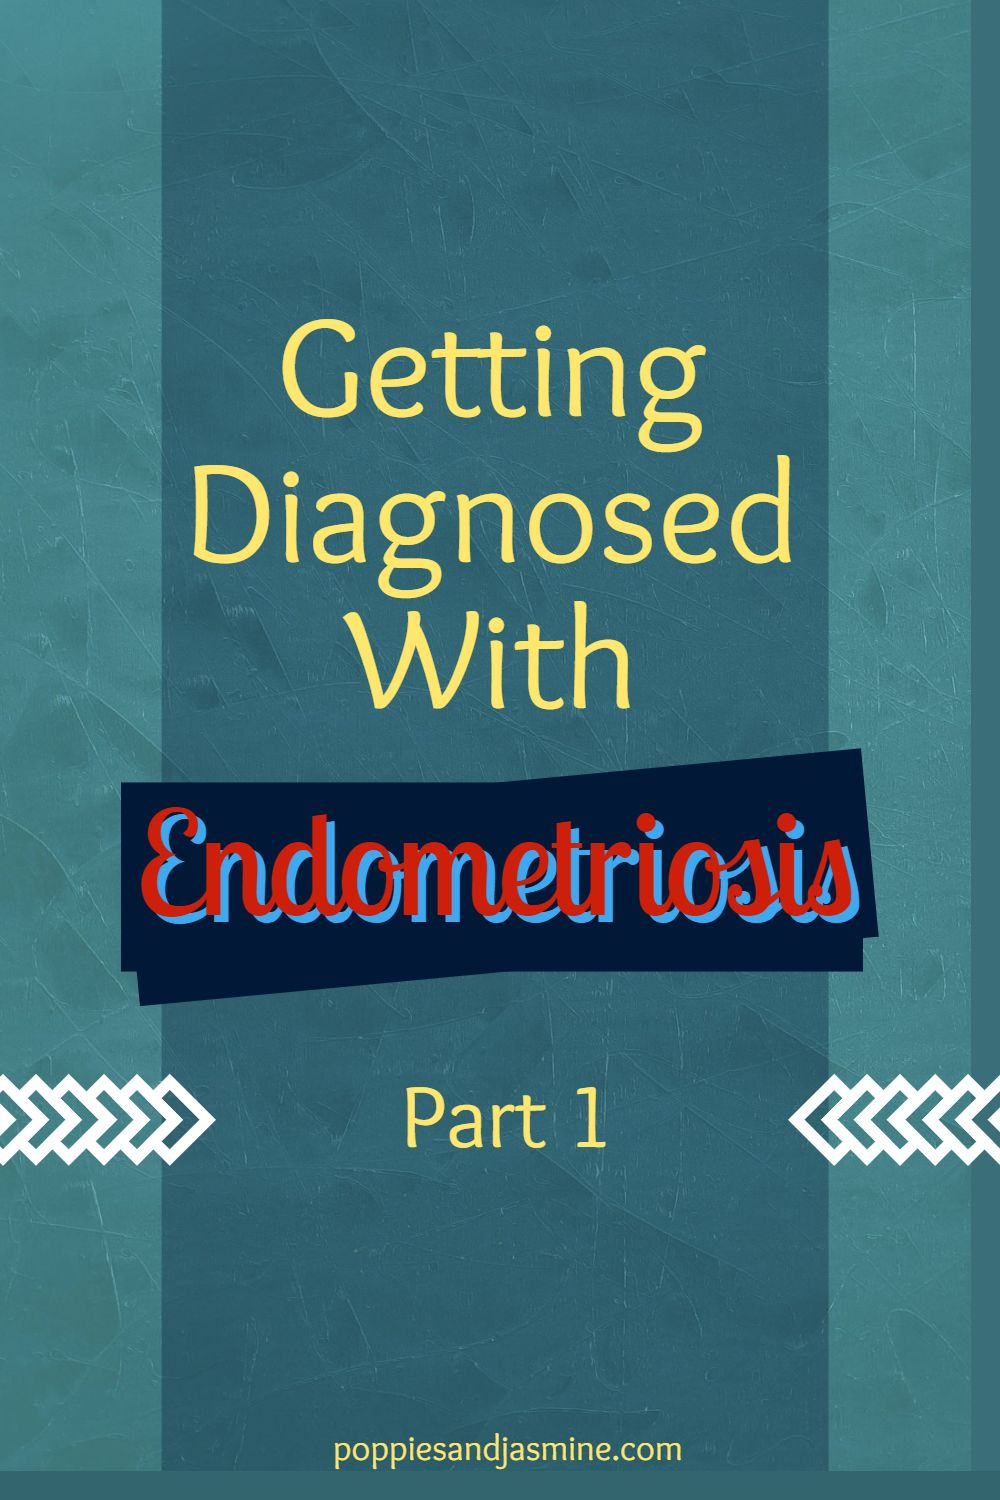 03222021 - Getting Diagnosed With Endometriosis Part 1 | Poppies and Jasmine